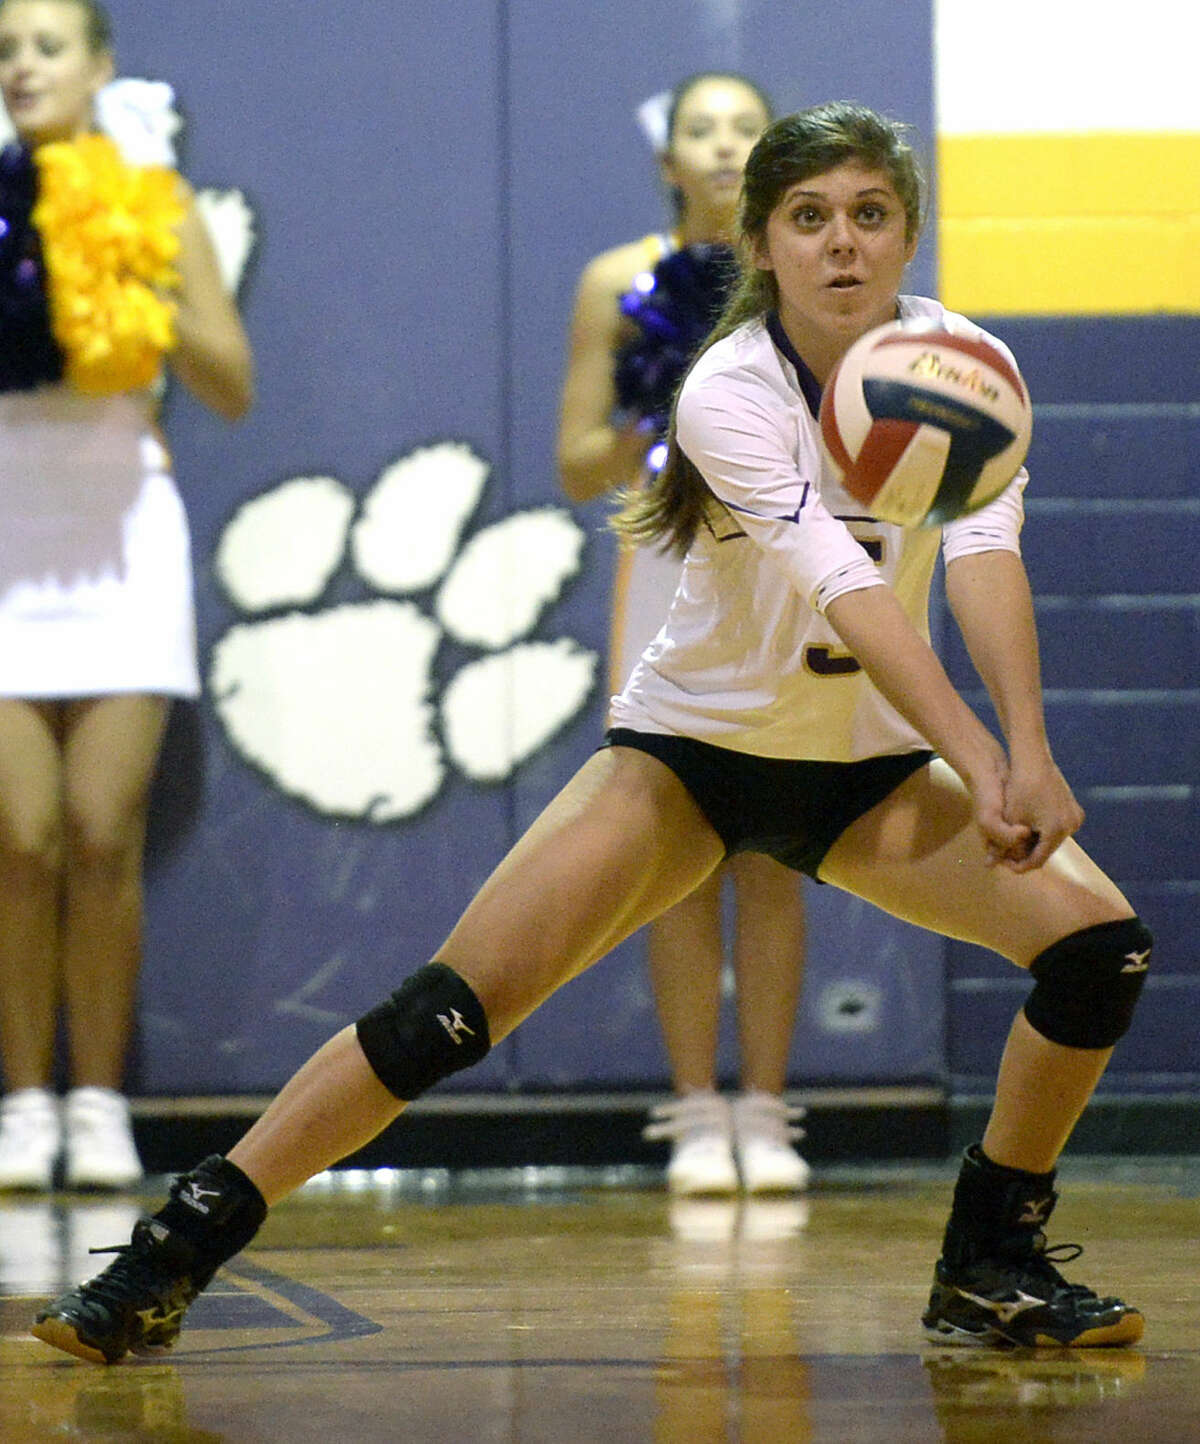 Midland High's Elizabeth Low (5) receives a serve from San Angelo Central on Tuesday, Sept. 29, 2015, at Midland High. James Durbin/Reporter-Telegram